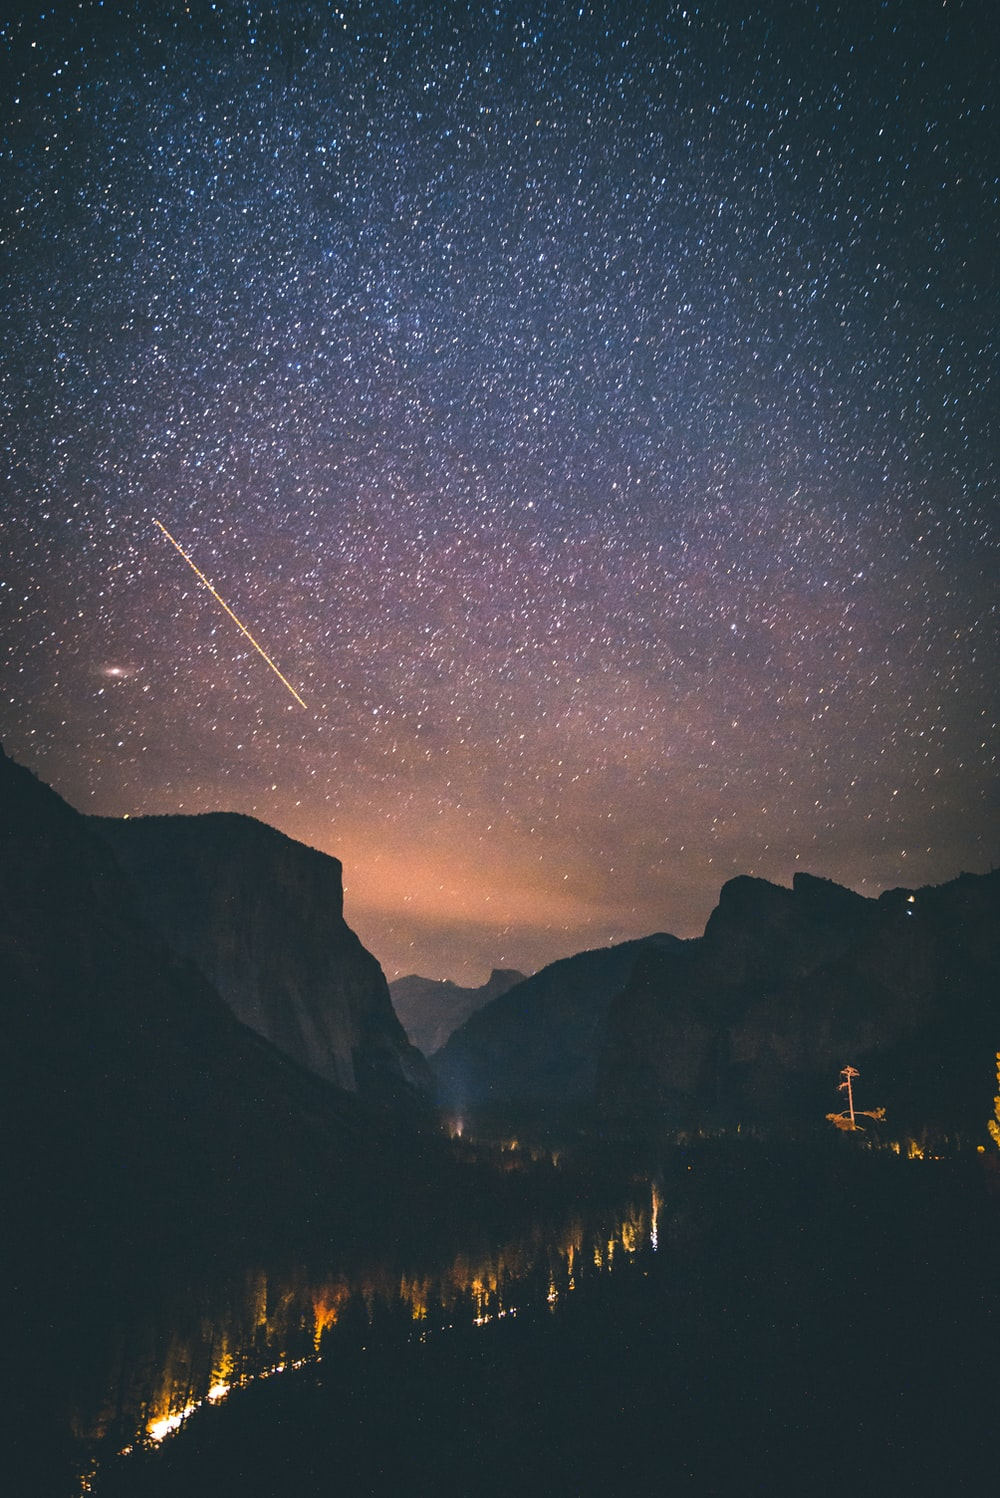 shooting star above mountains